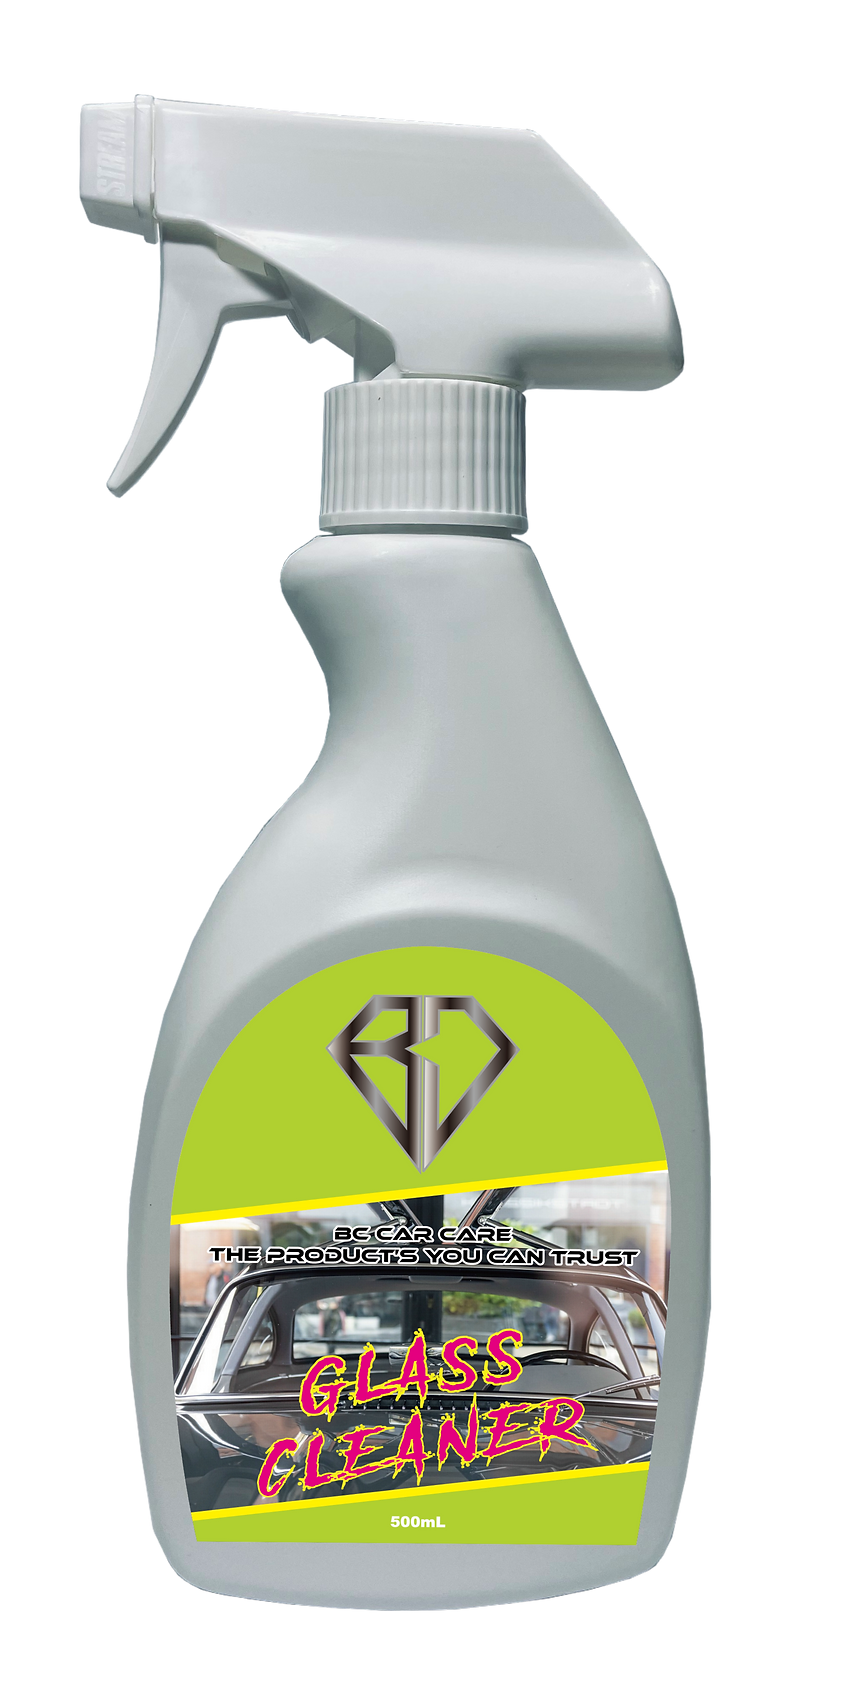 Glass cleaner green.png